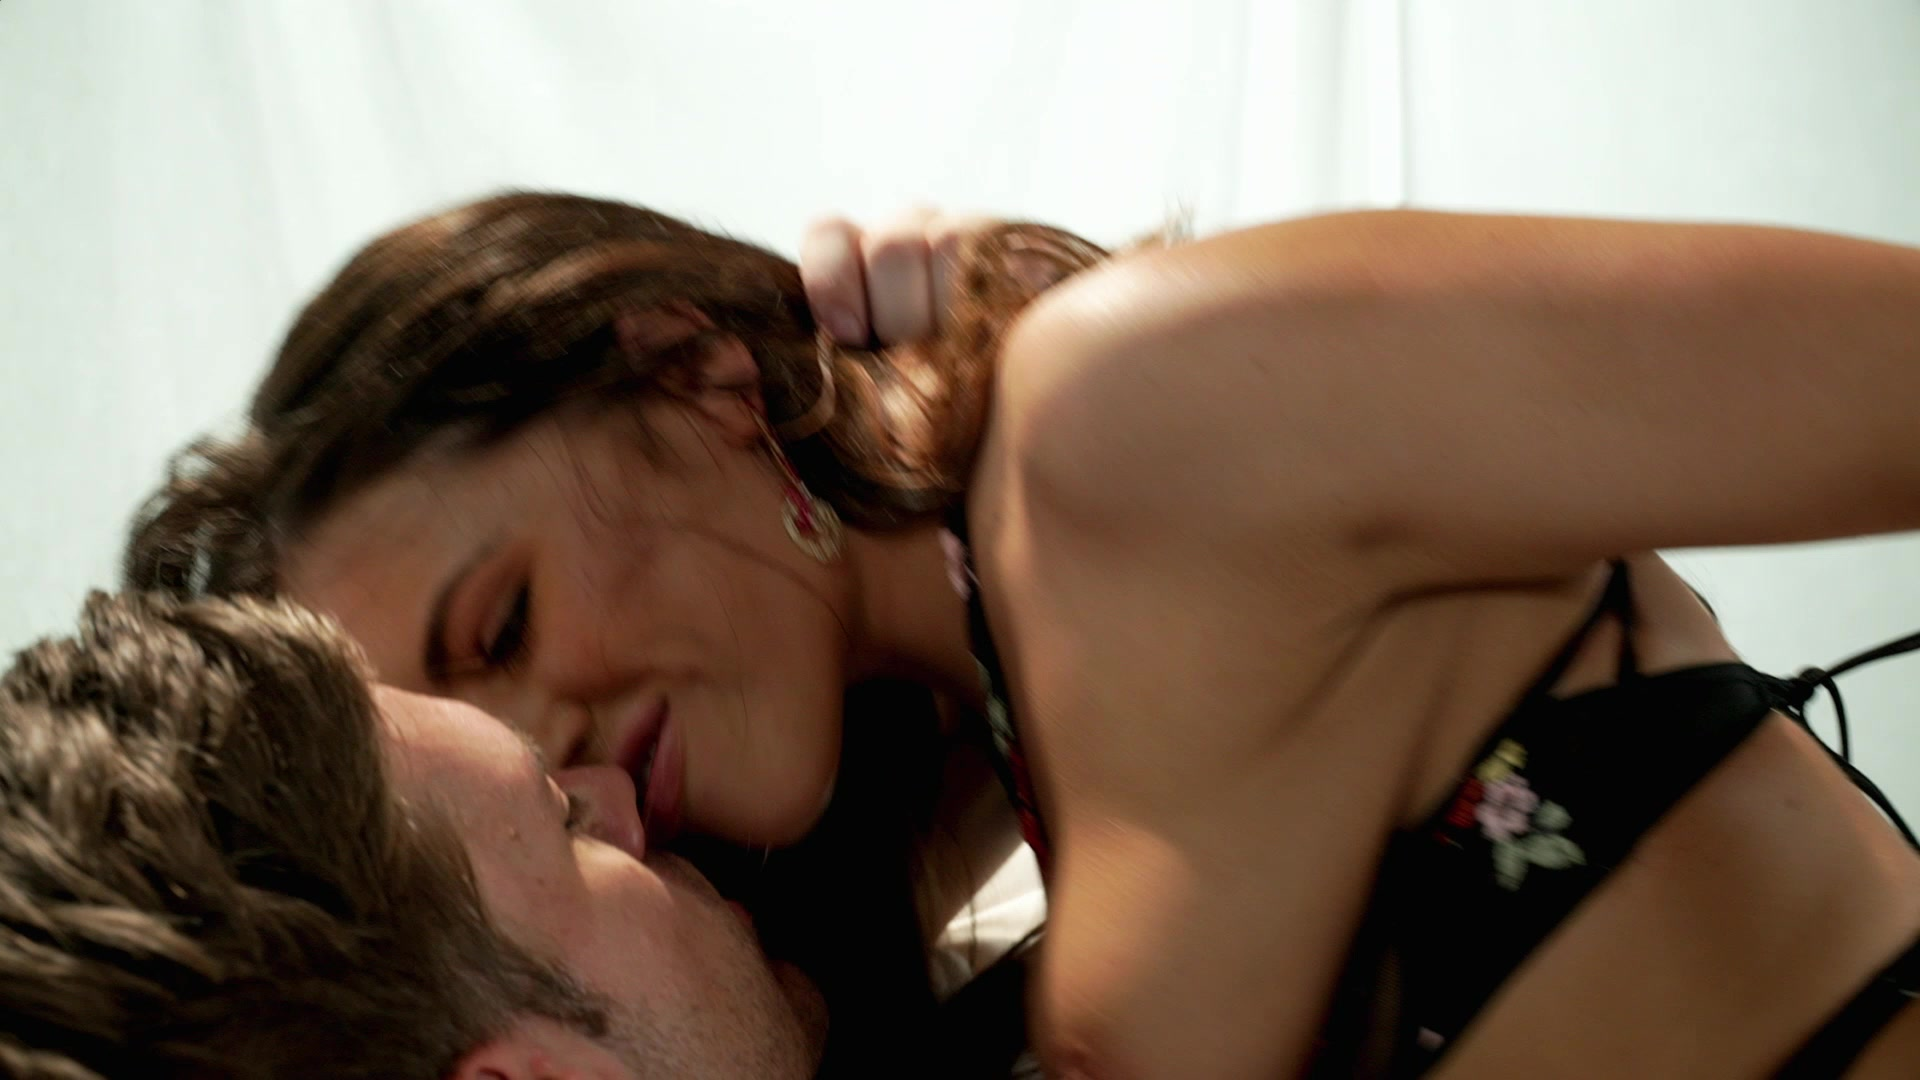 Scene with Adriana Chechik - image 18 out of 20